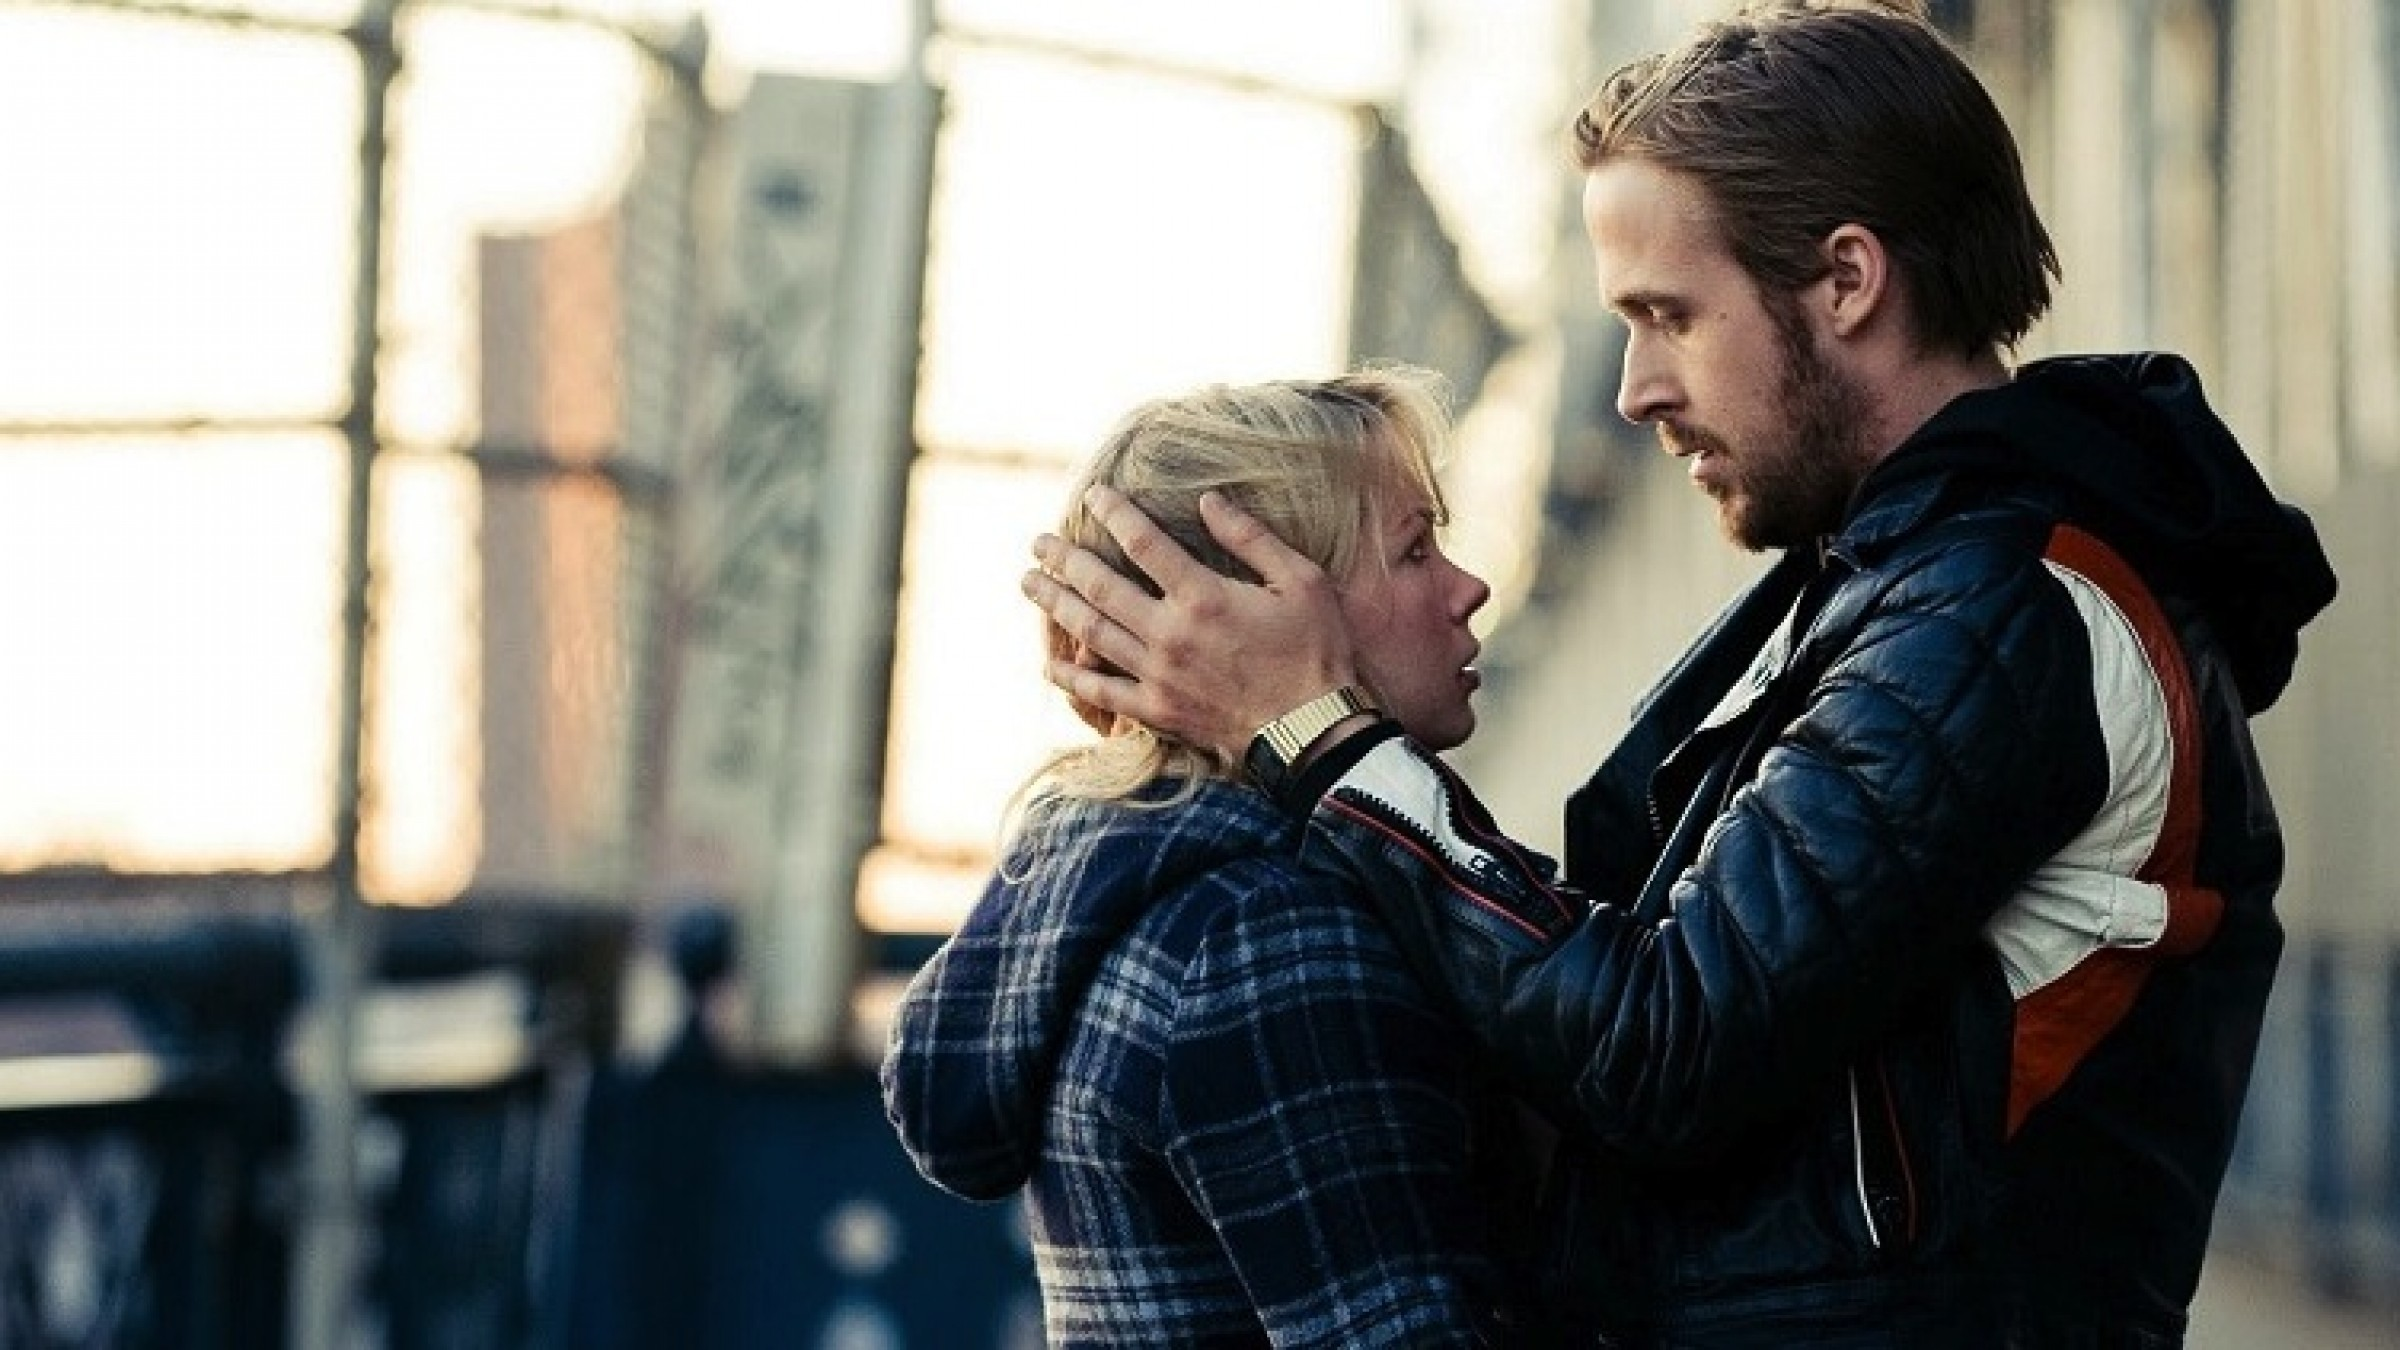 Real Dying Love: Here's What 'Blue Valentine' Can Teach Us About Making Authentic Films